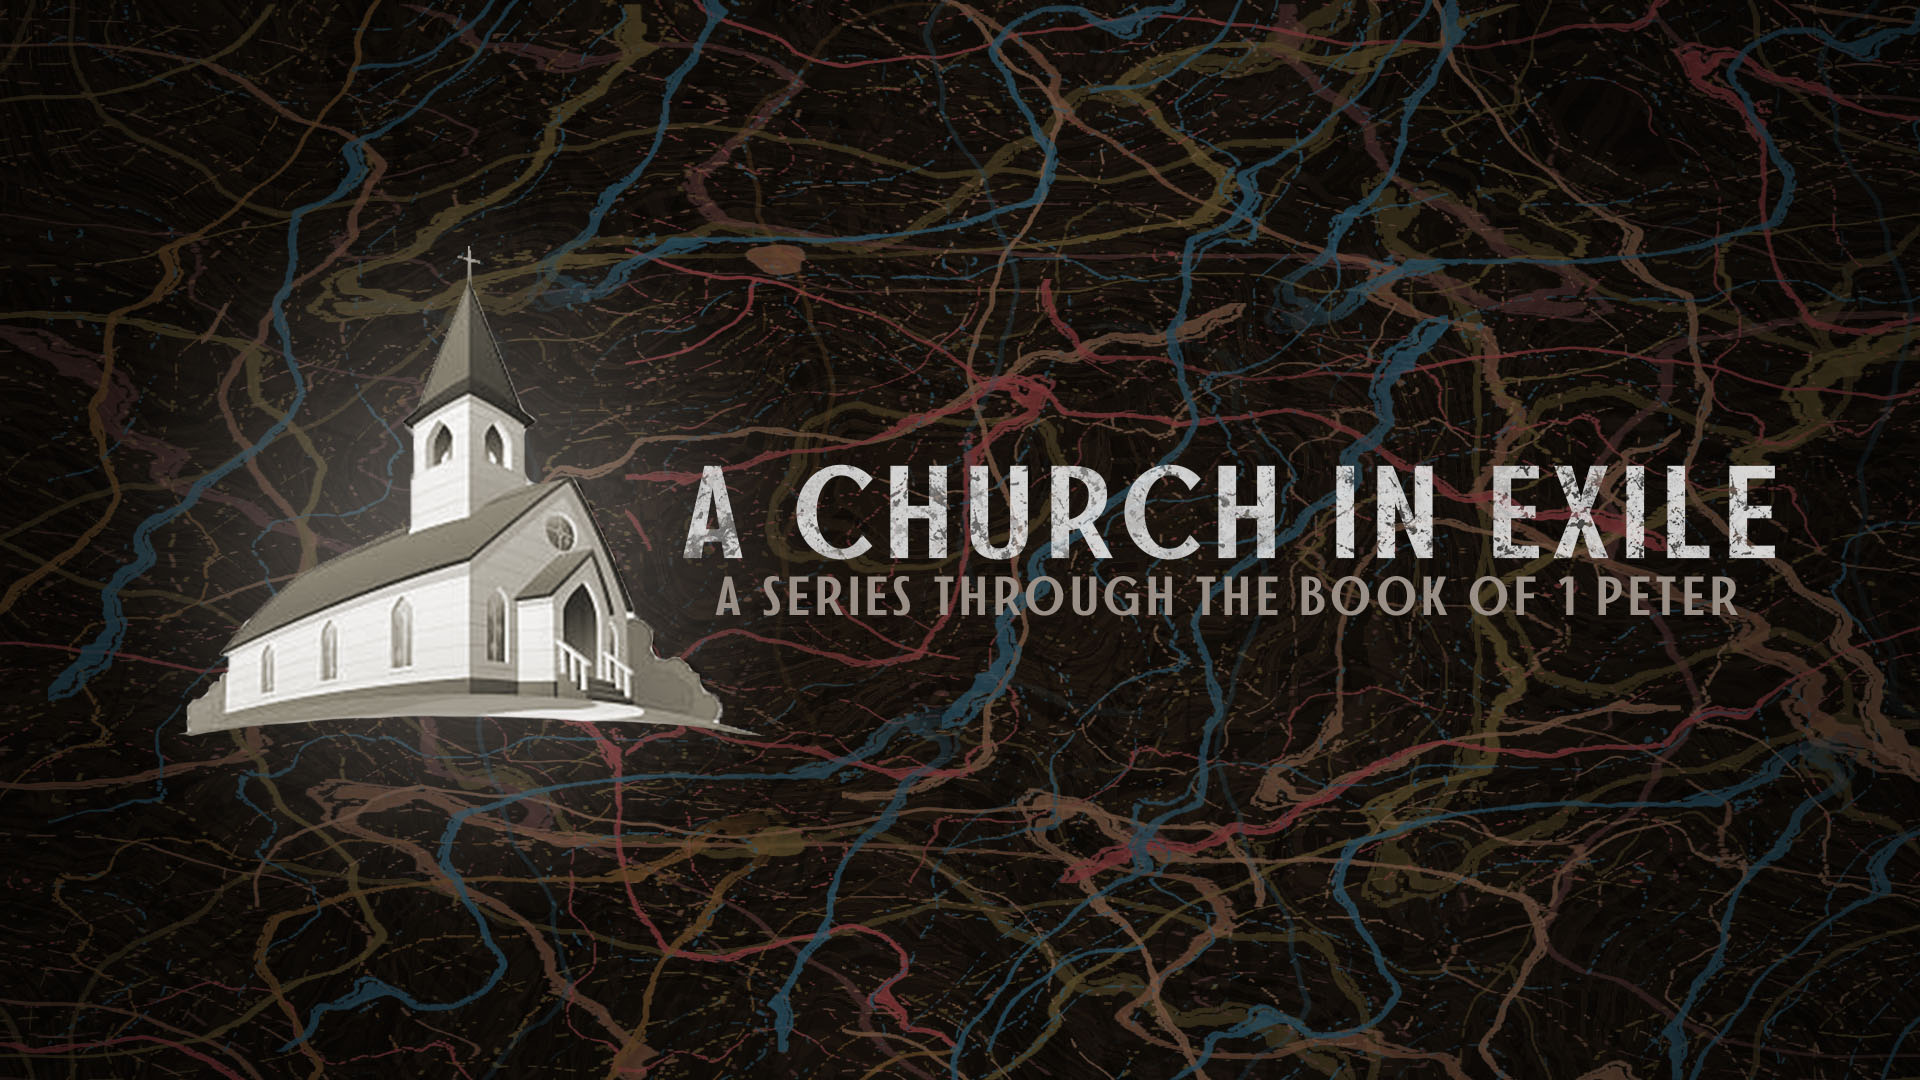 A Church in Exile - A Series through the Book of 1 Peter